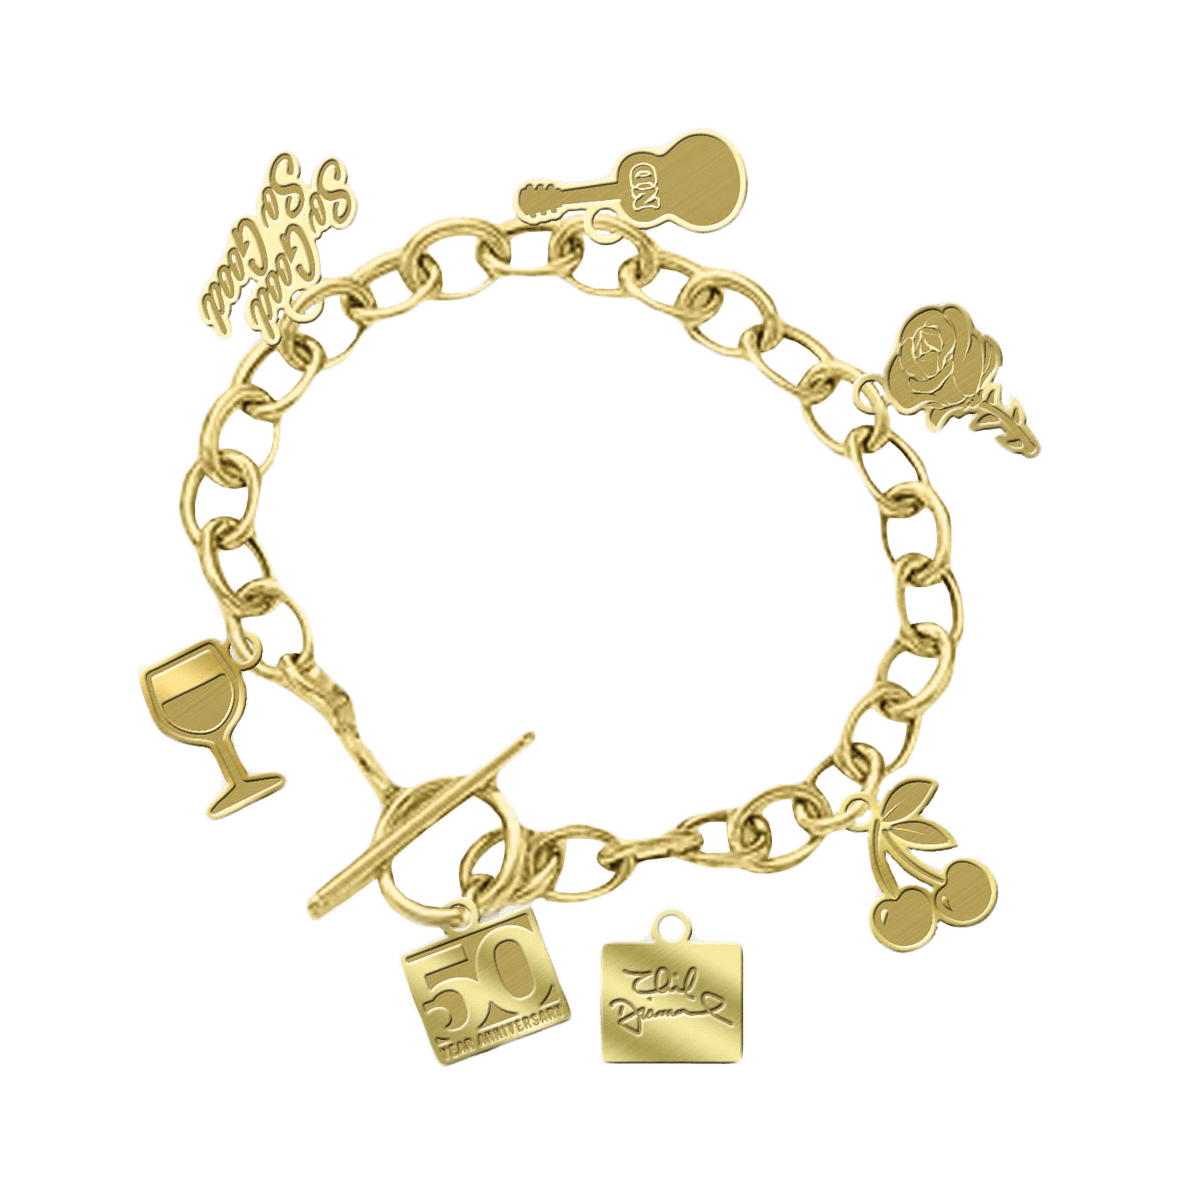 heaven a products in my charm heart bracelet of piece is